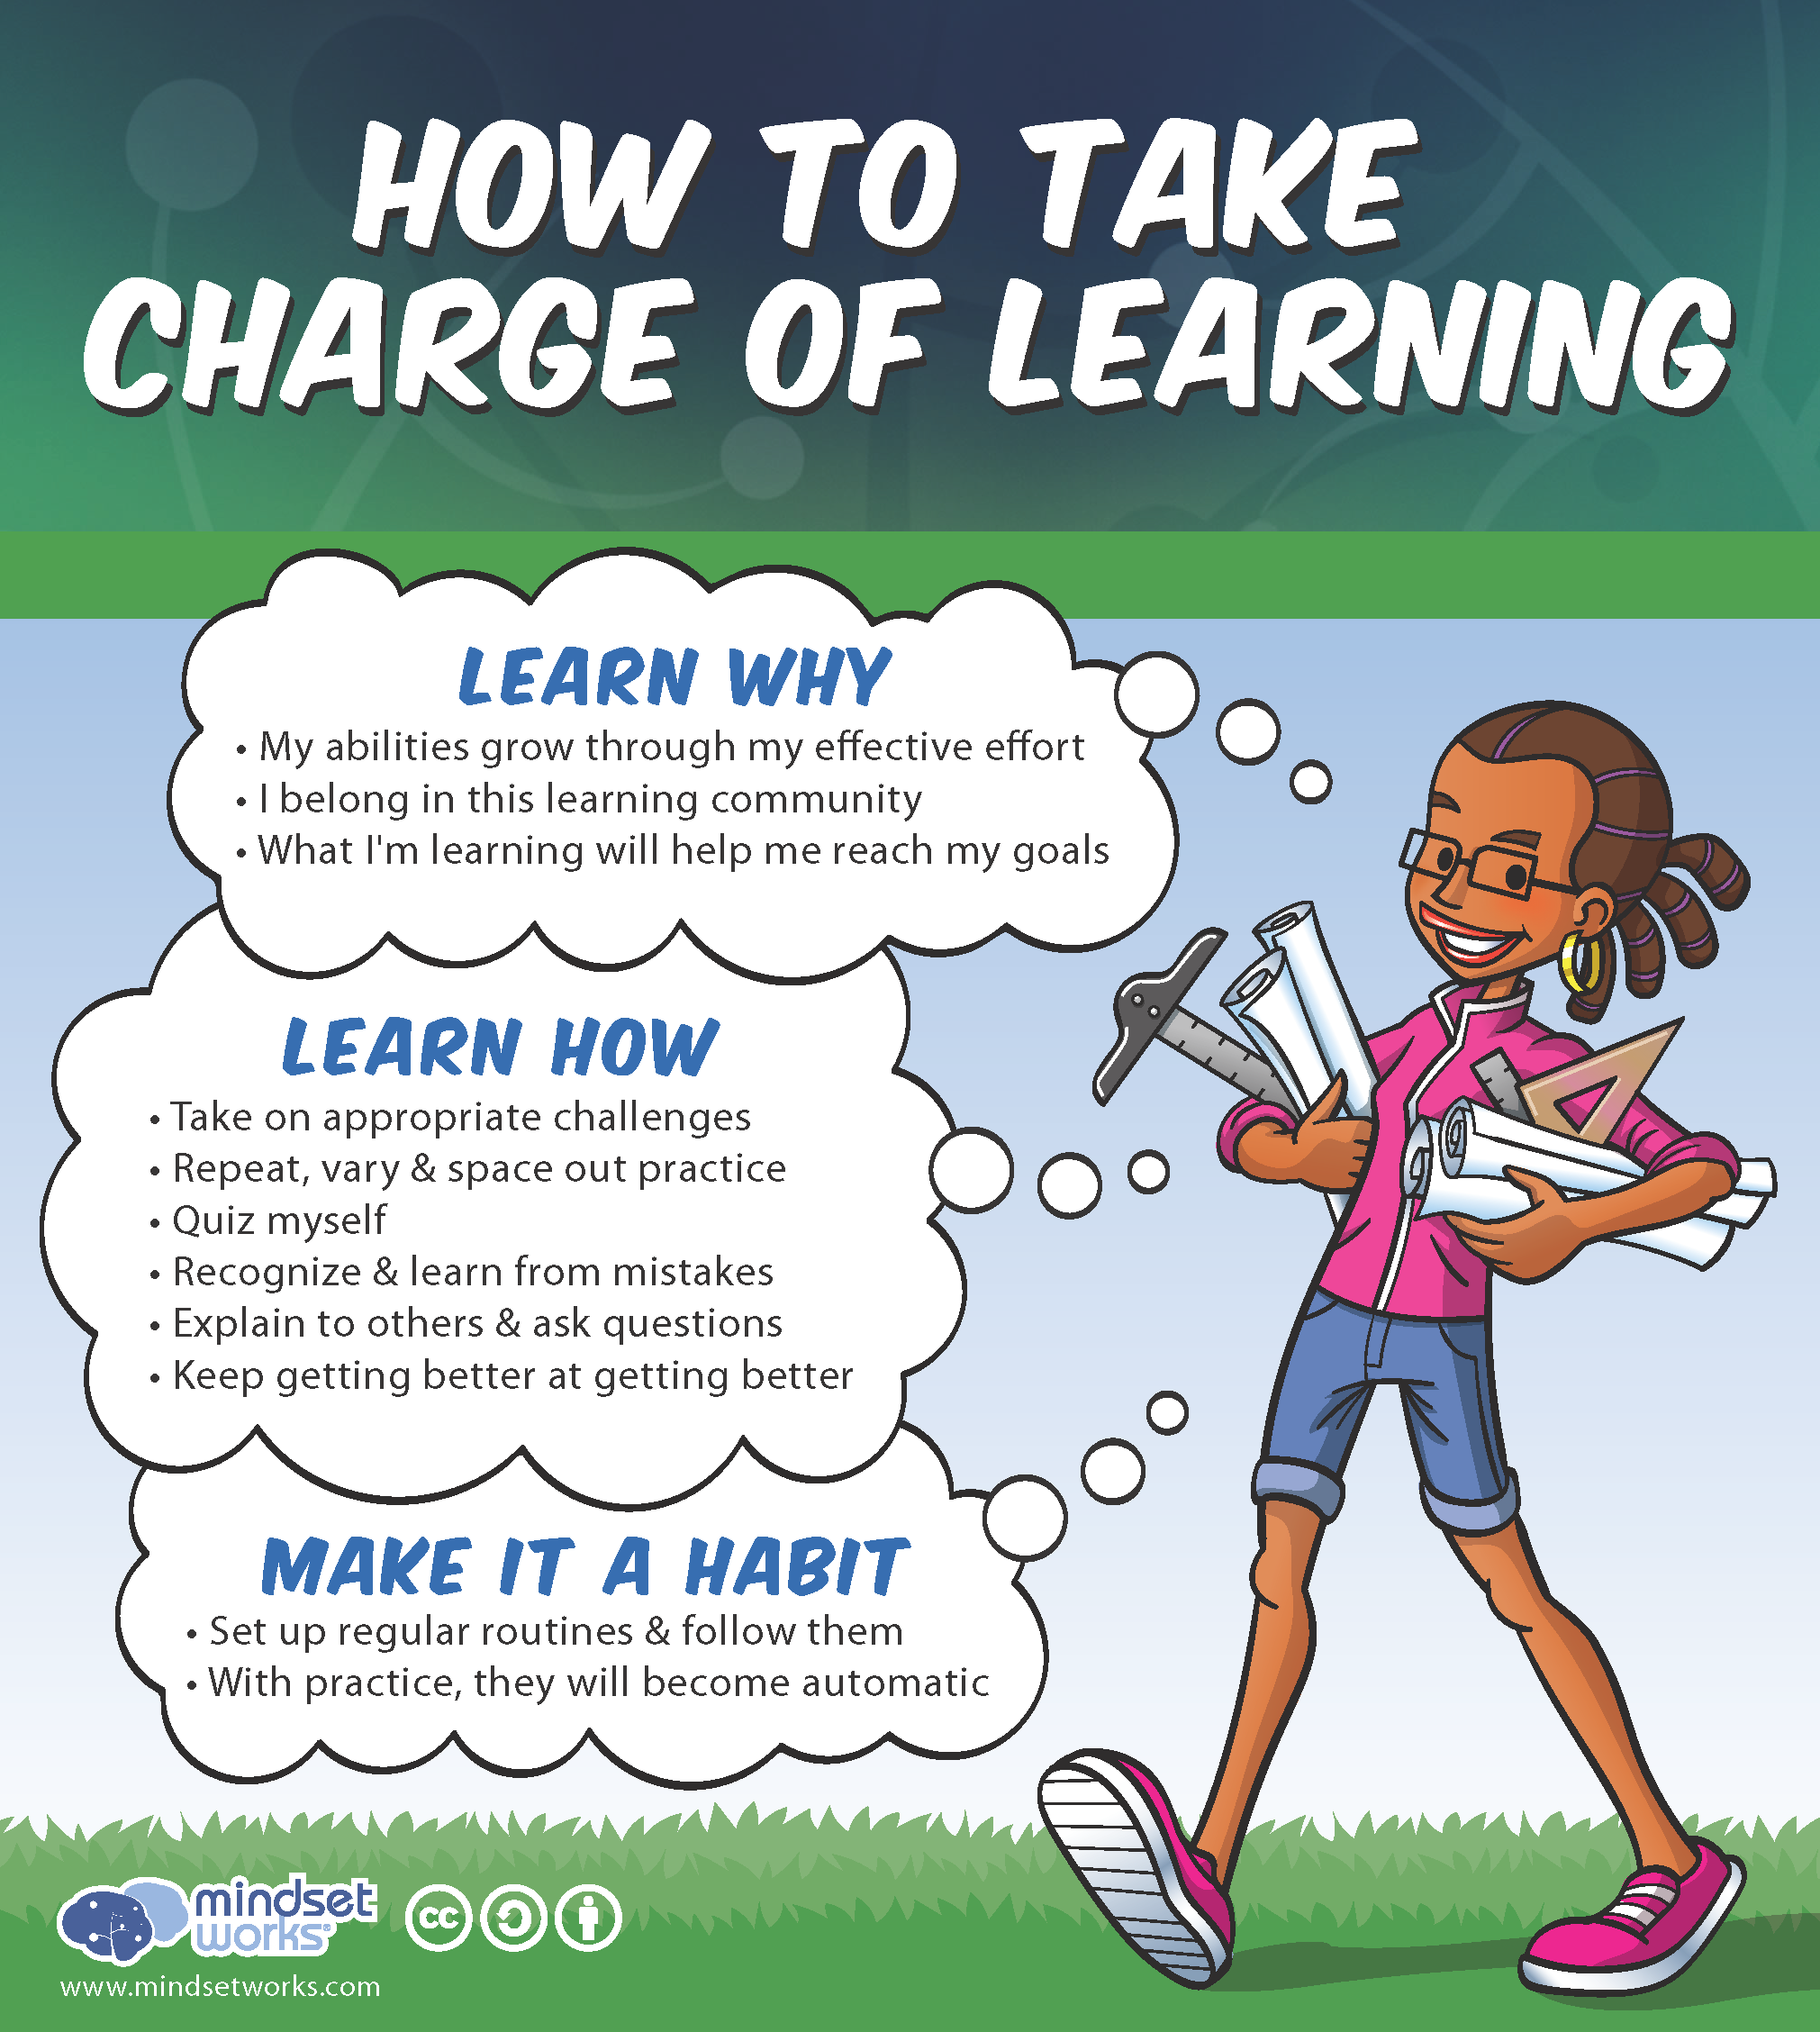 mw-take-charge-of-learning